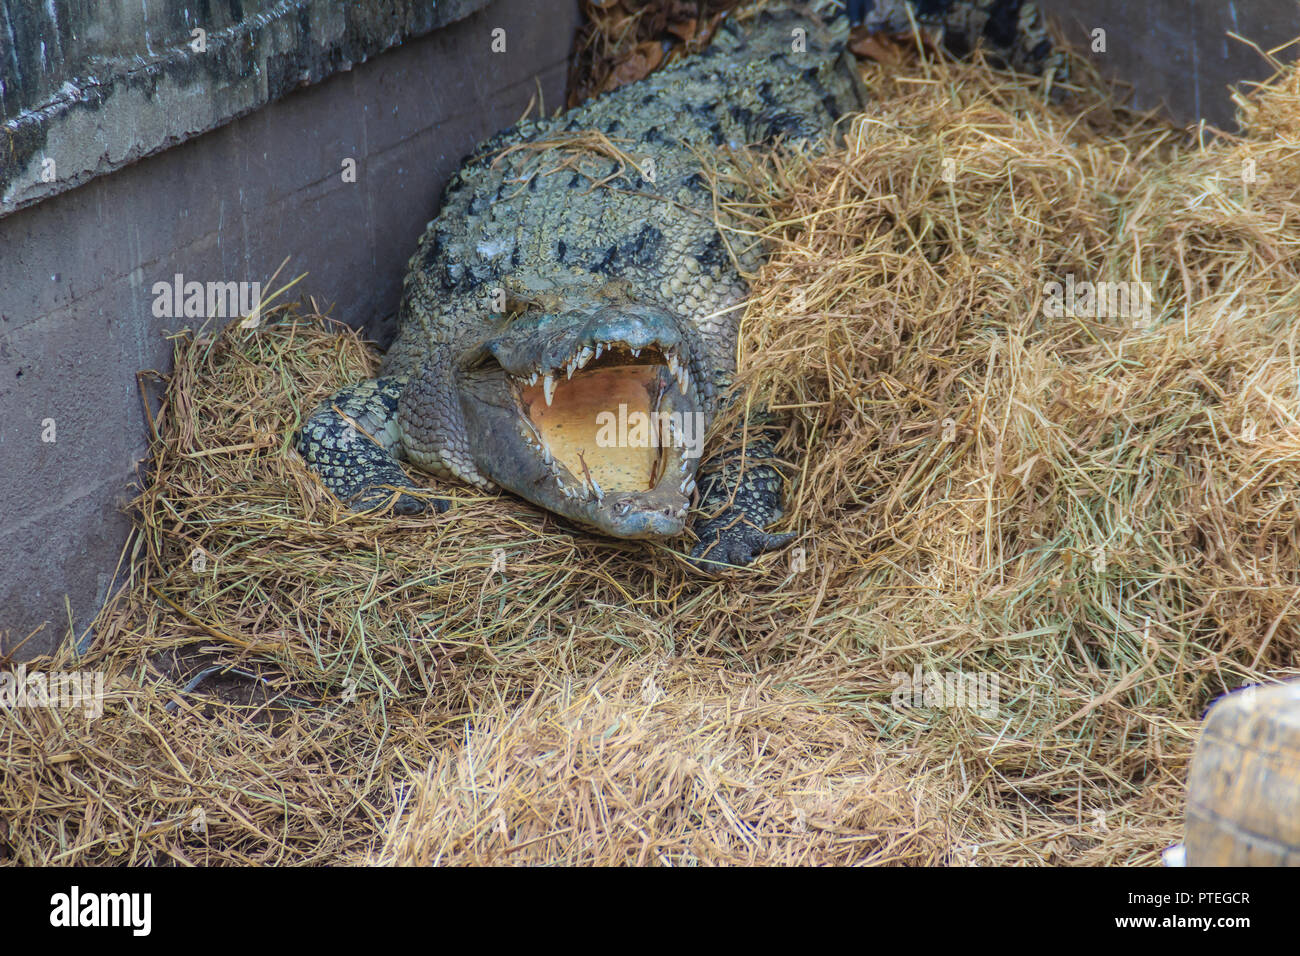 Wild crocodile laying eggs in the straw nest. Alligator is spawning eggs in the straw nest. Stock Photo